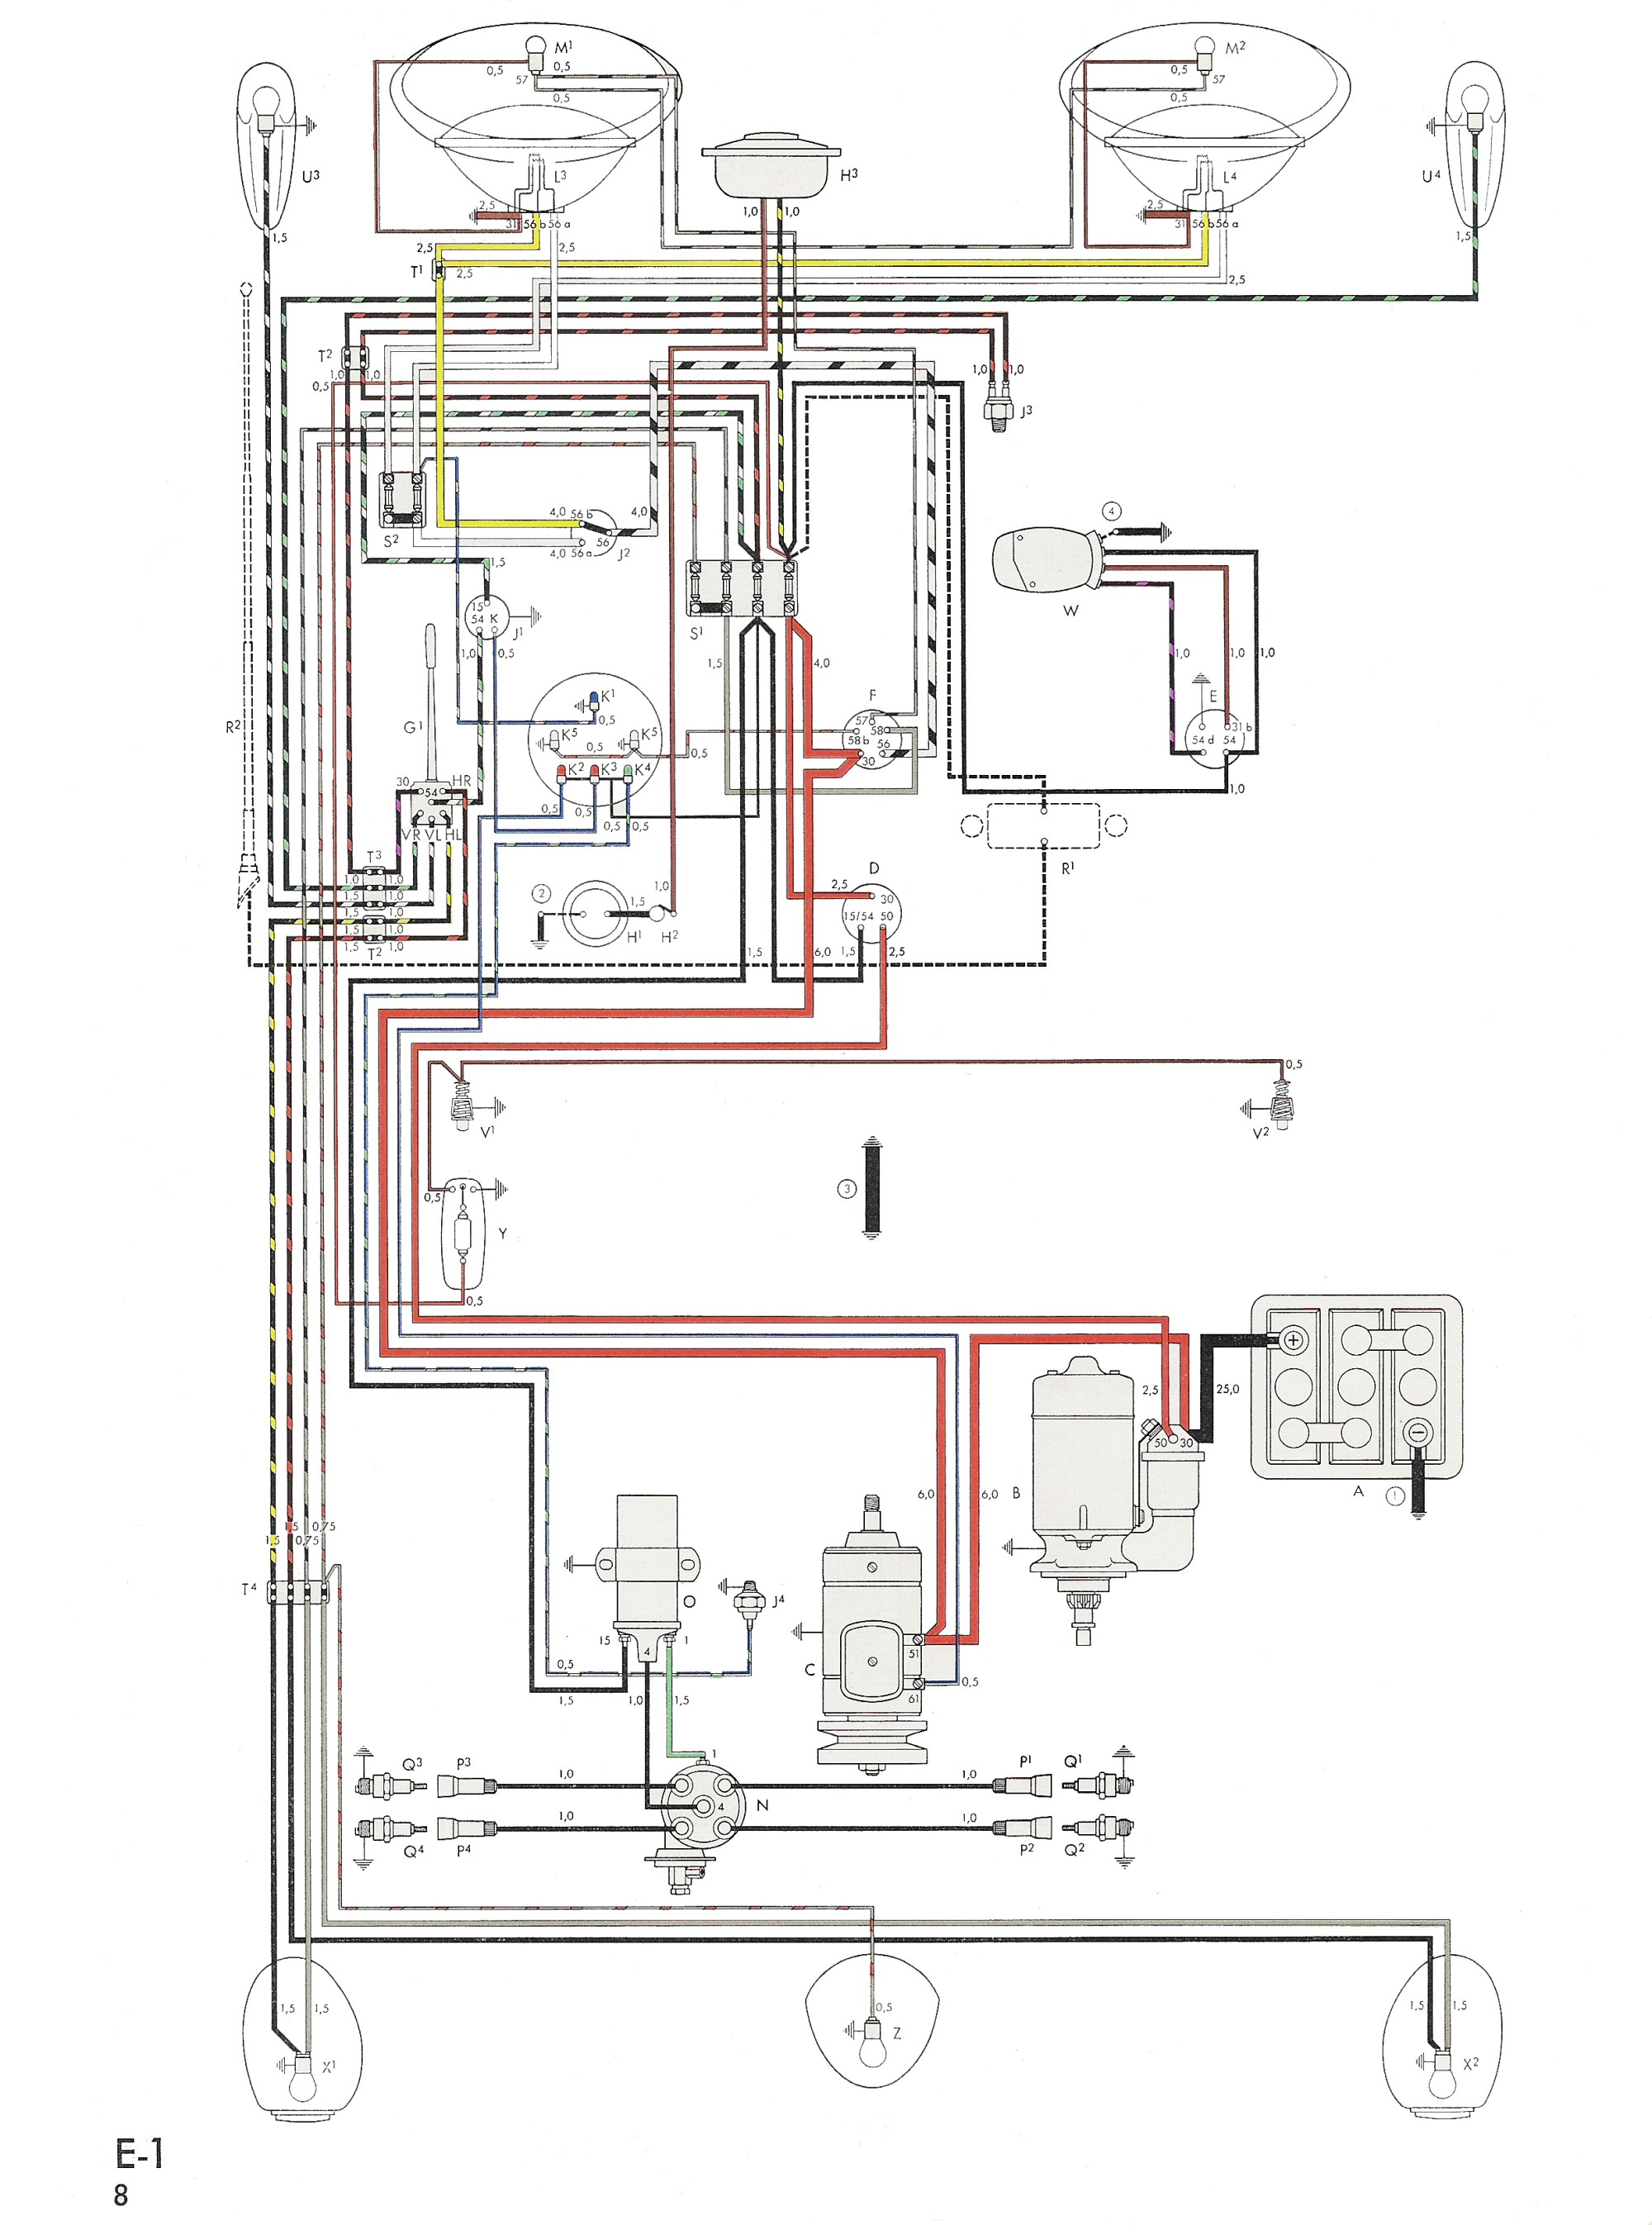 hight resolution of thesamba com type 1 wiring diagrams 2013 vw beetle fuse box diagram vw new beetle fuse